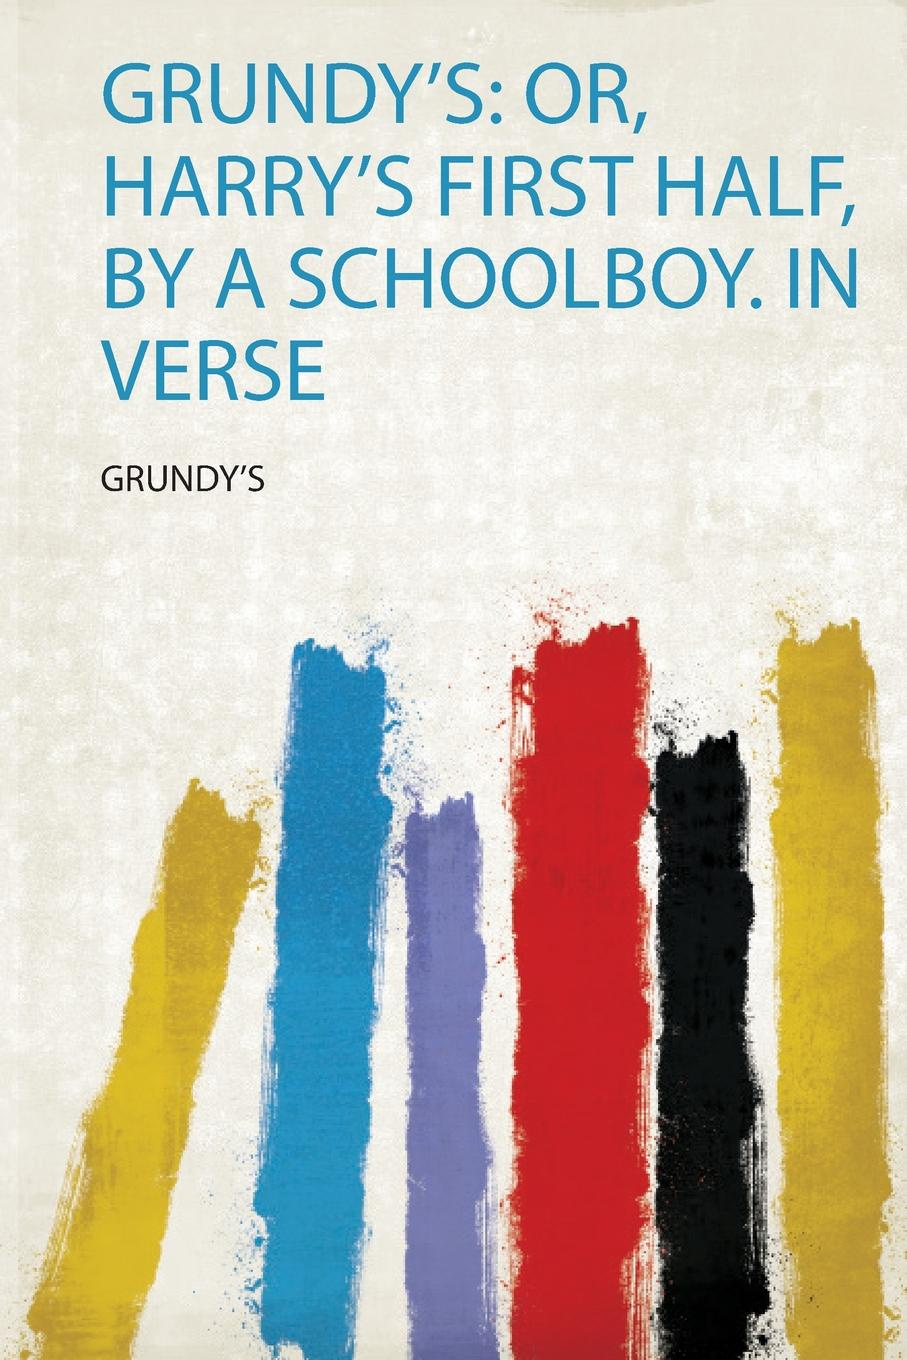 Grundy's. Or, Harry's First Half, by a Schoolboy. in Verse